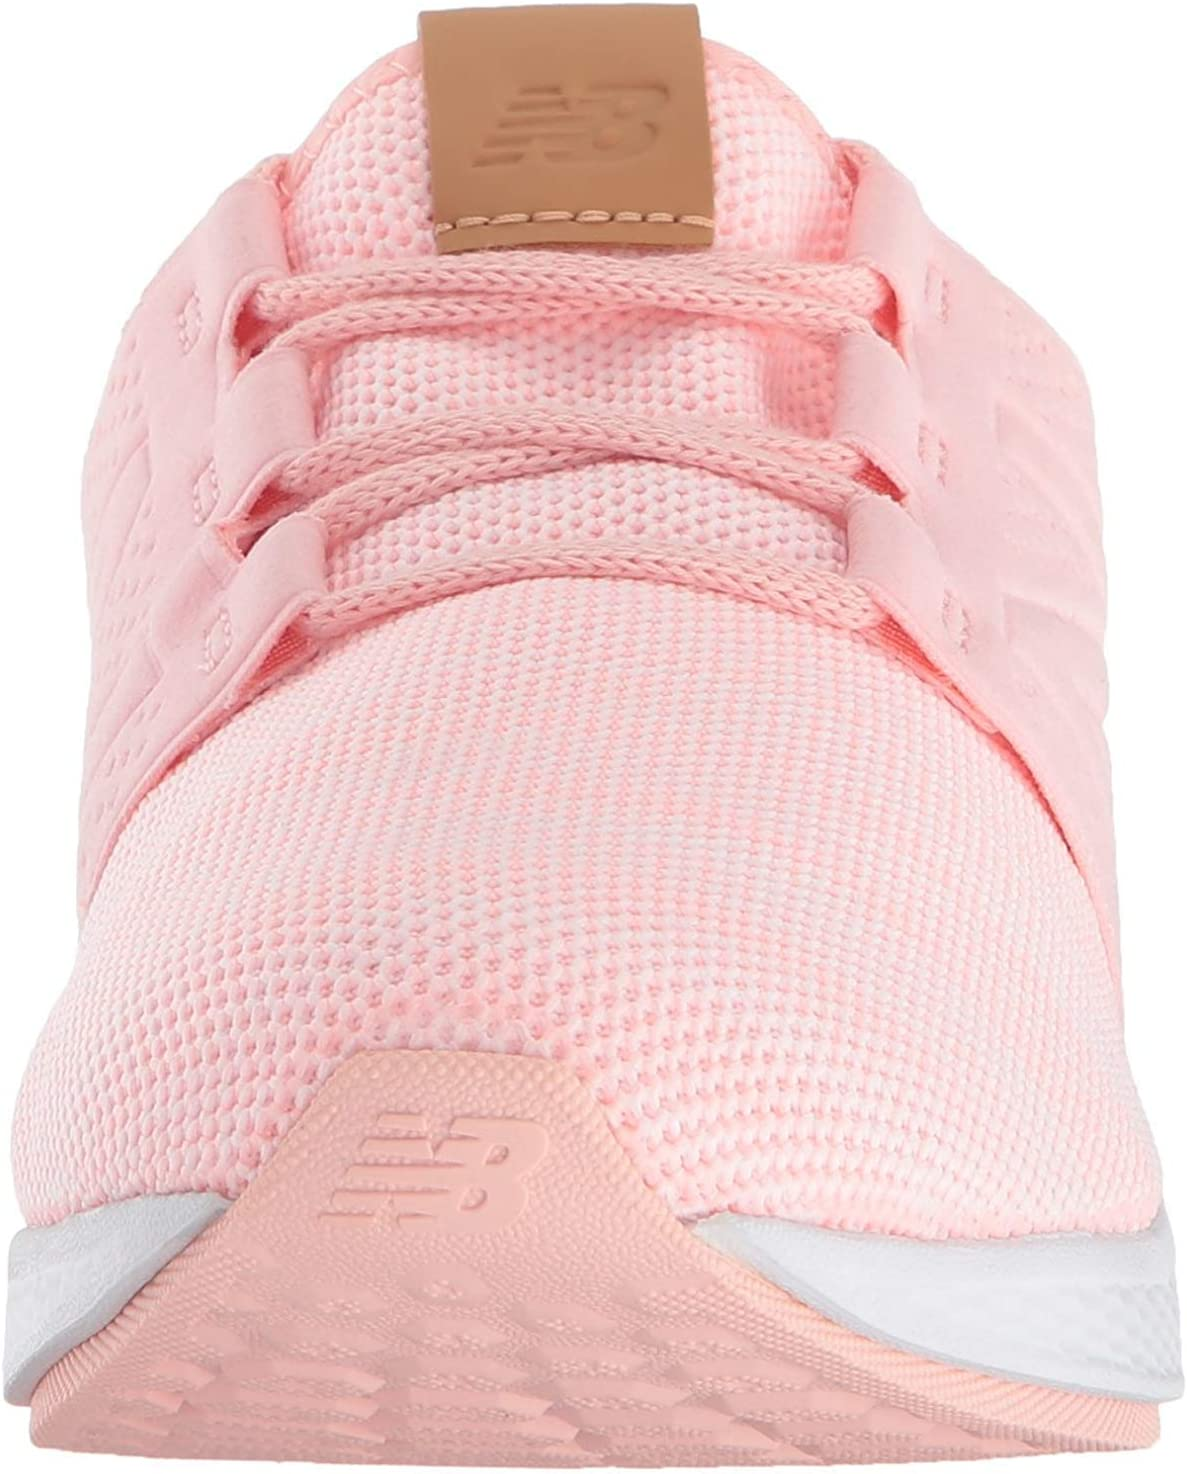 New Balance Girls' Cruz V2 Fresh Foam Running Shoe Himalayan Pink 4.5 M US Big Kid [並行輸入品]